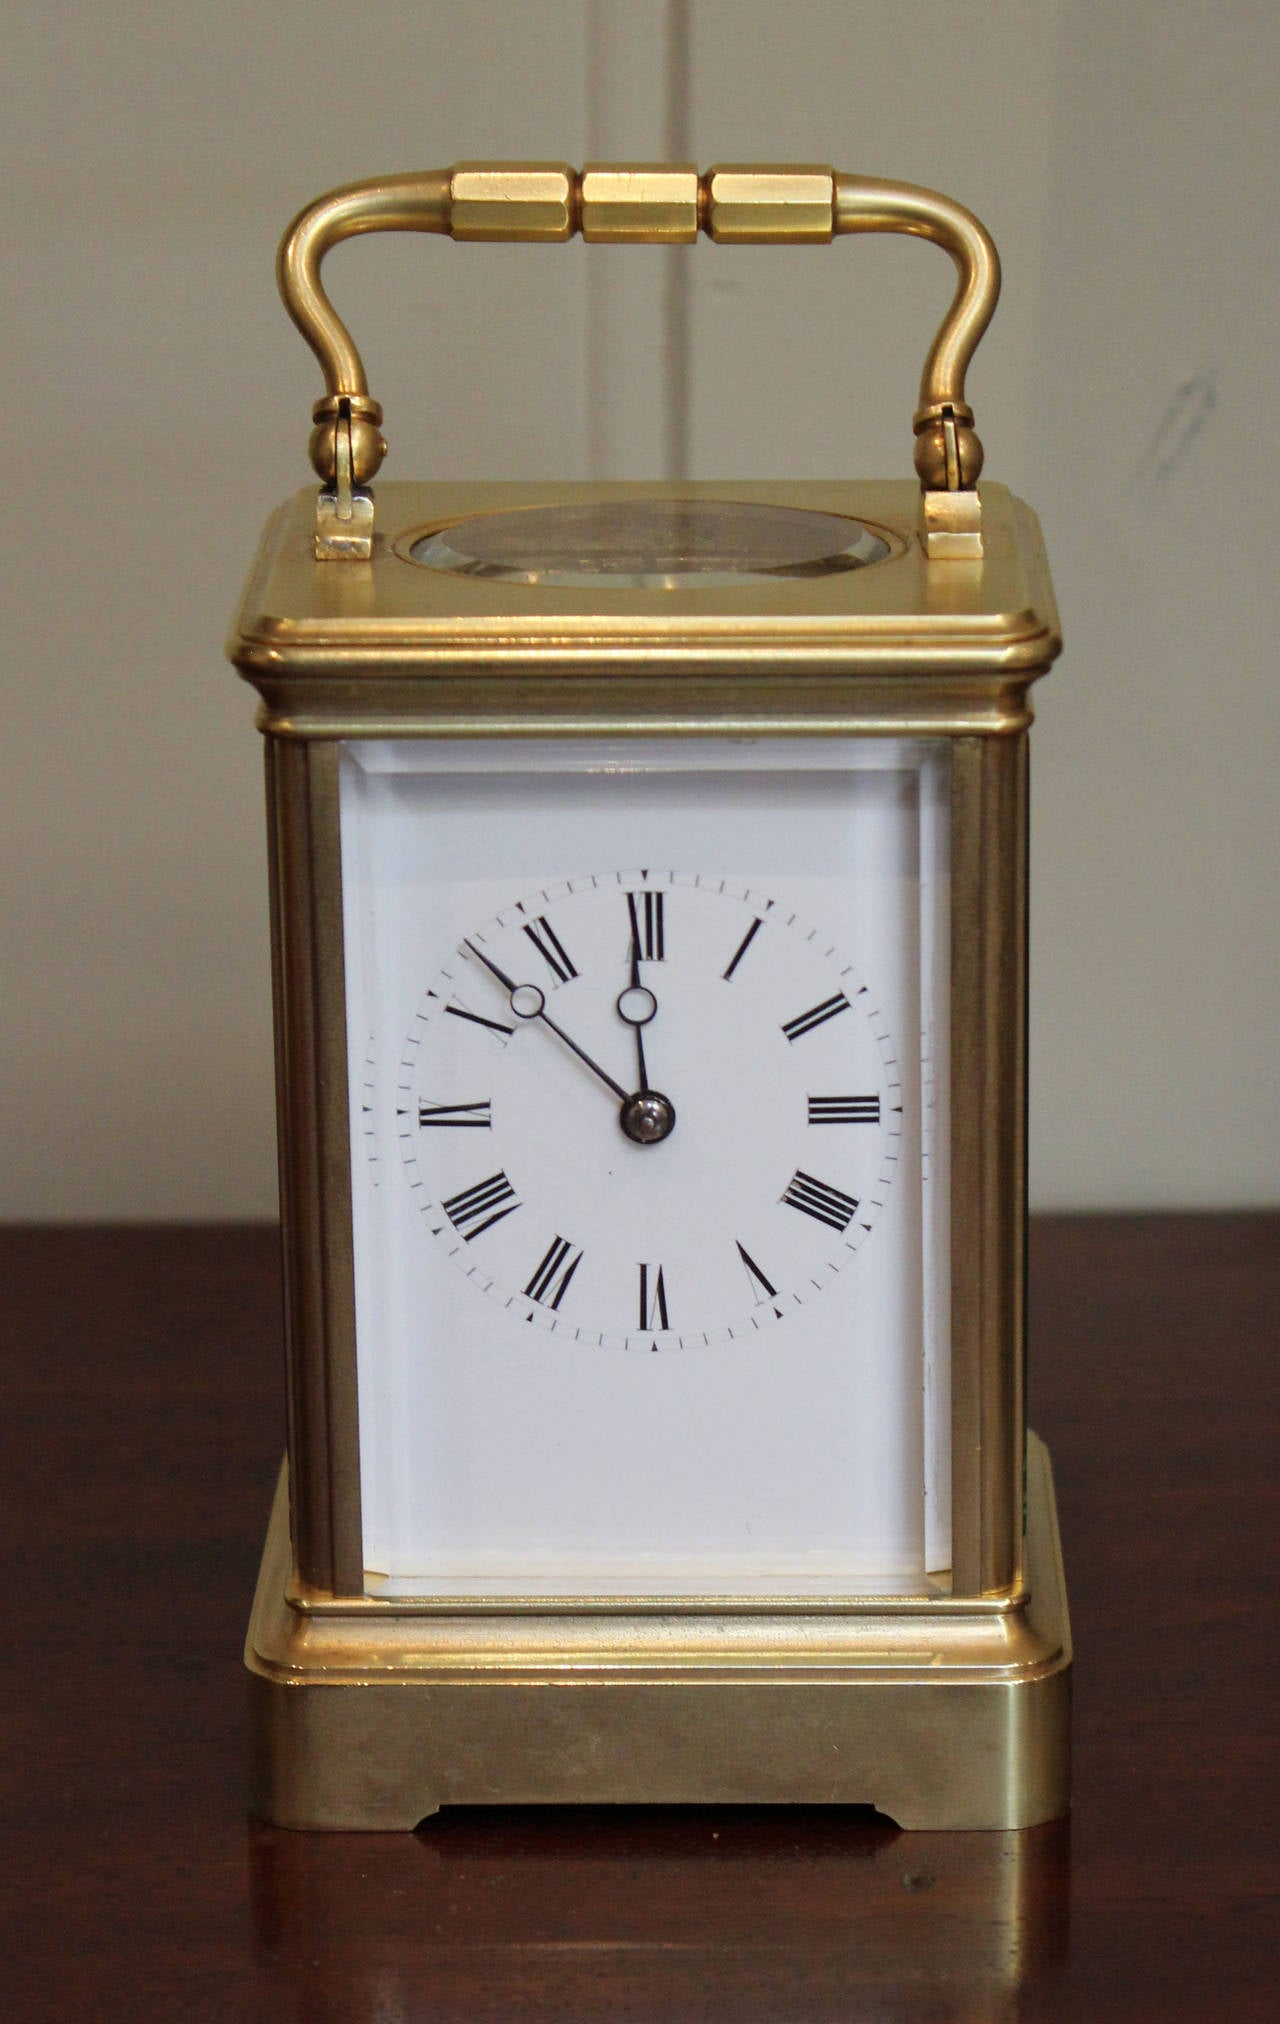 dating french carriage clocks French carriage clock time and strike evan stiewing antique french striking repeater brass carriage clock-jhlny - duration: 1:38 ny jhl 1,903 views.